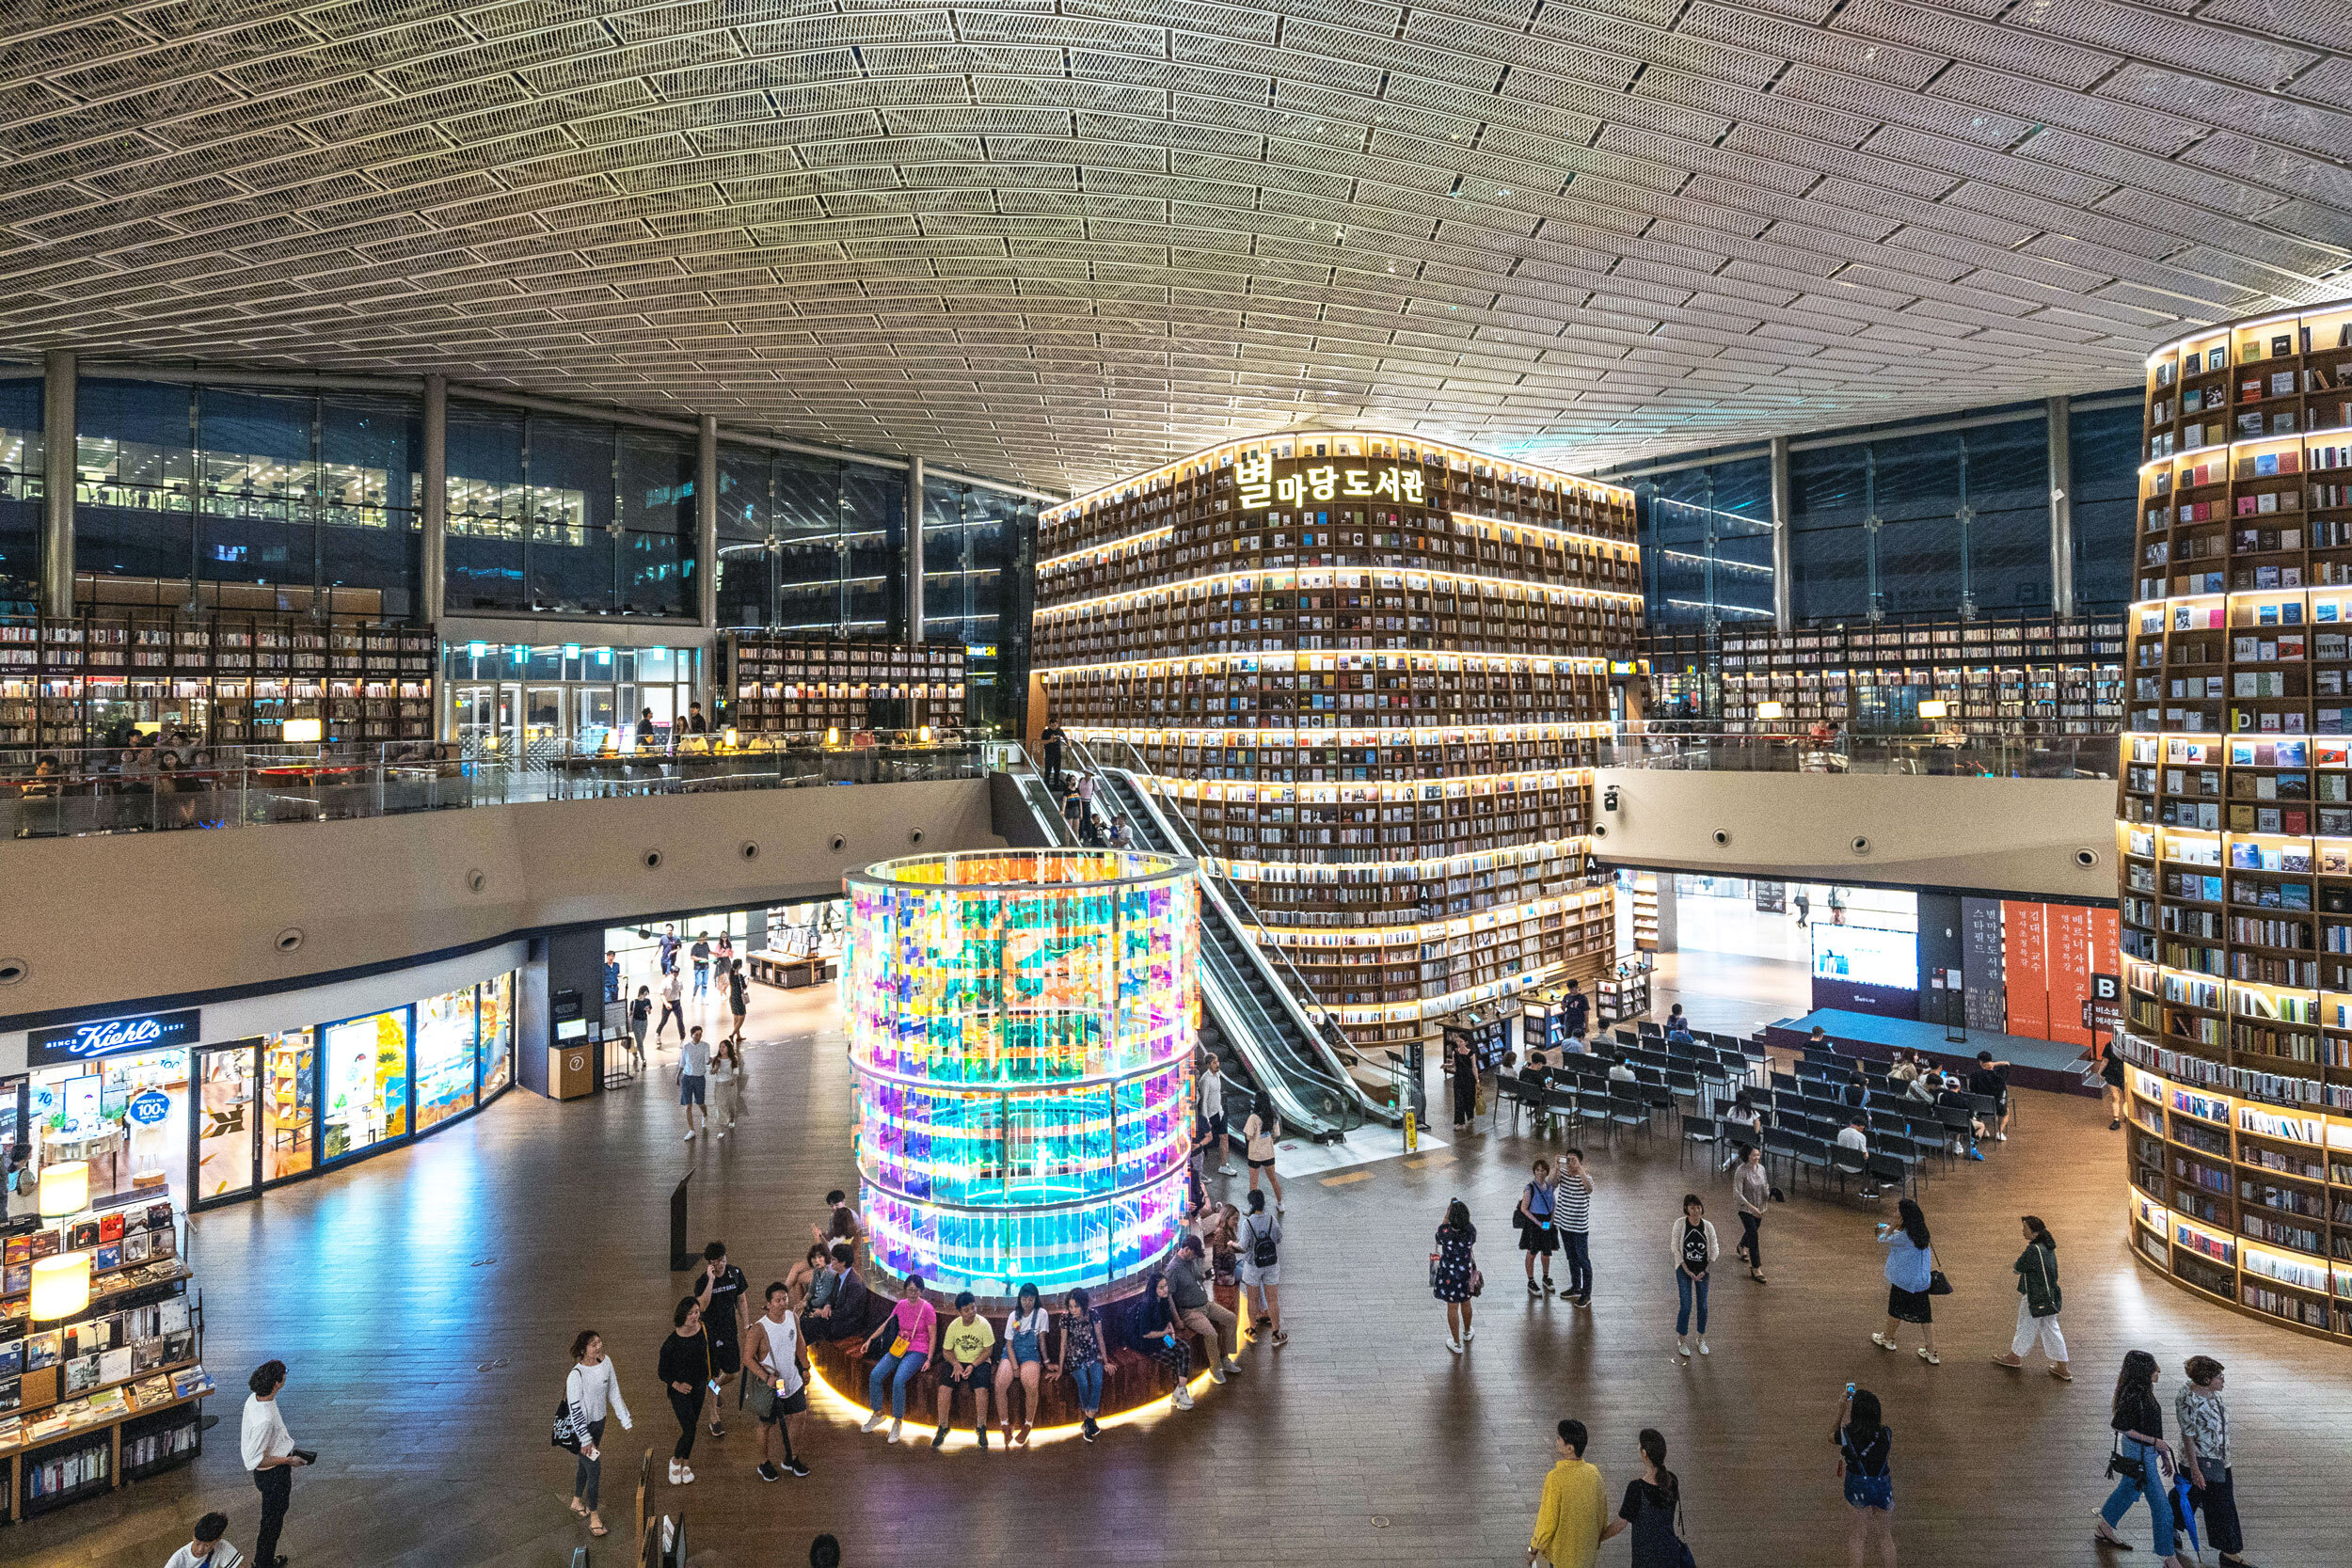 Starfield Library at the COEX Mall in Gangnam